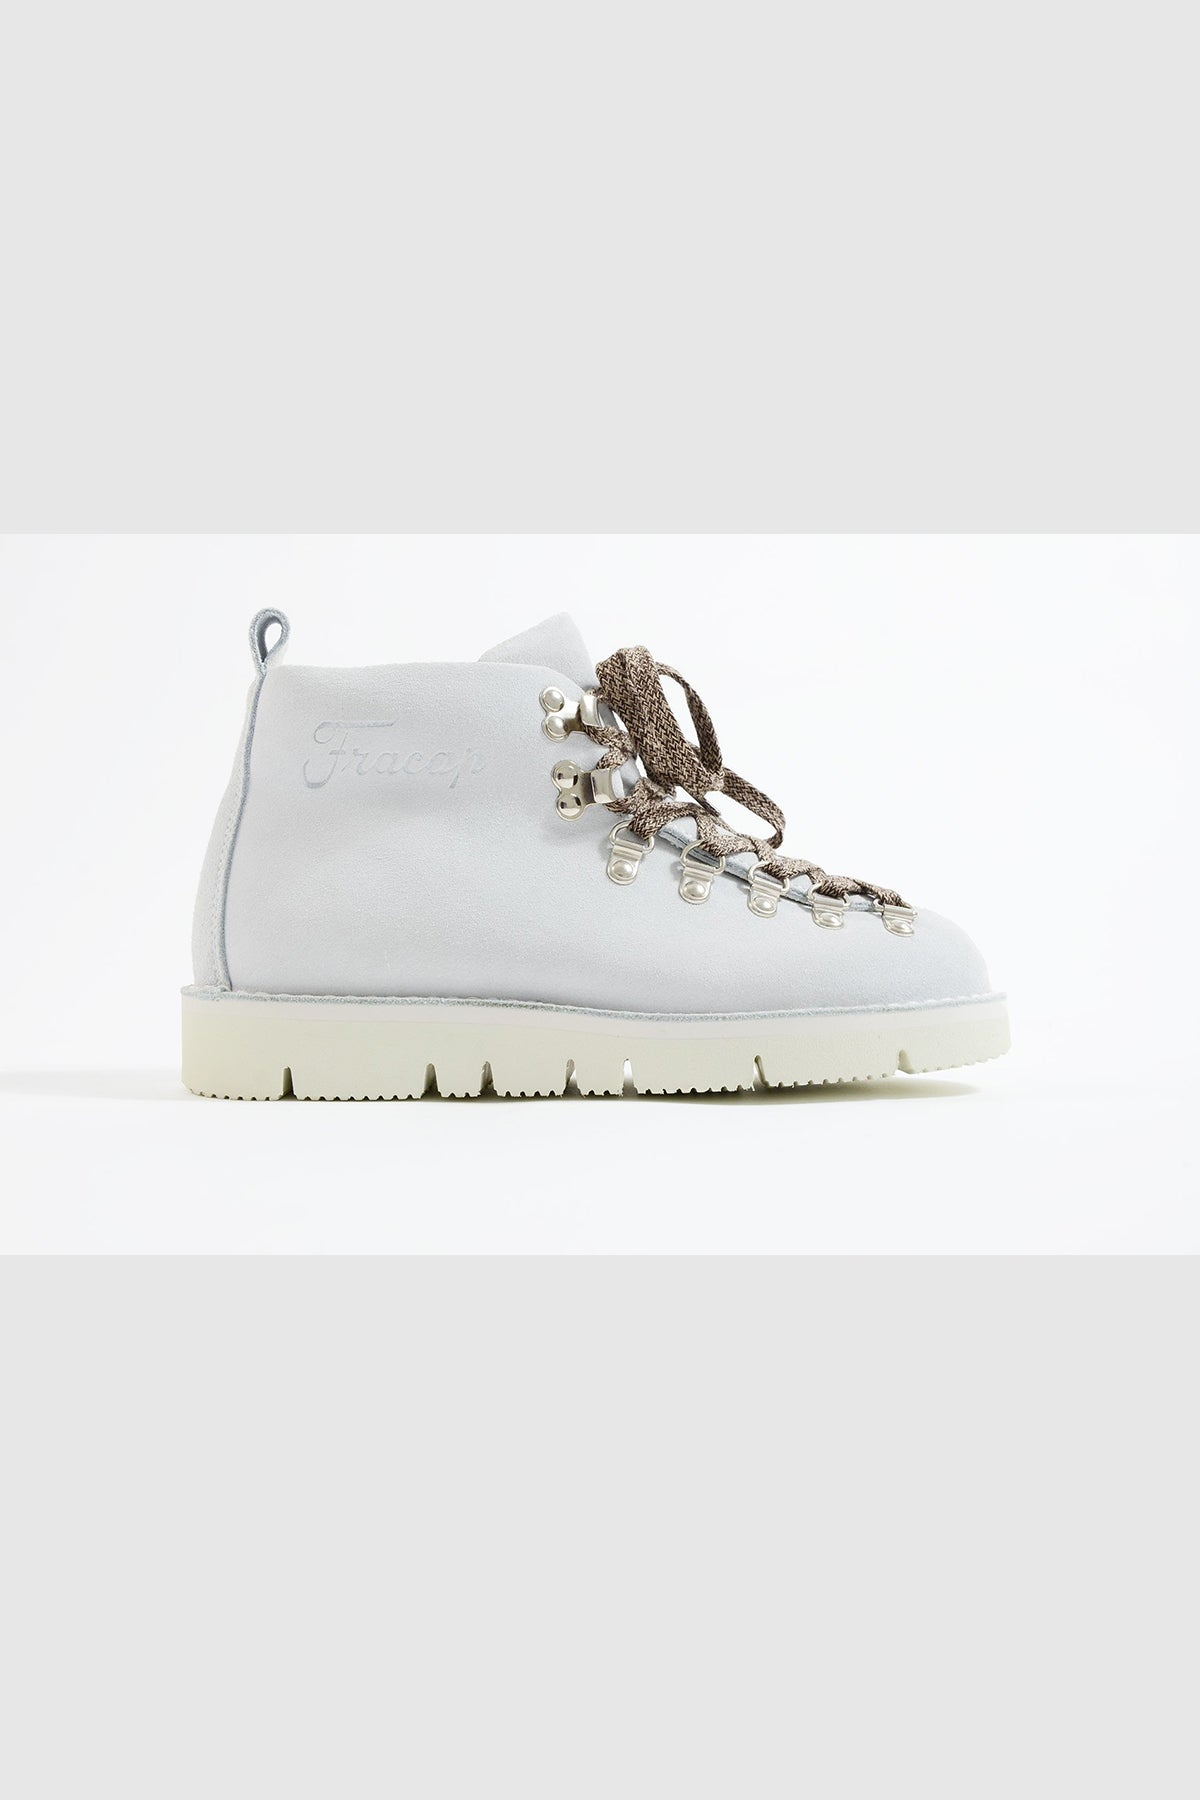 90ab51c160a Fracap x Sneakerworld - Winterboot Unisex